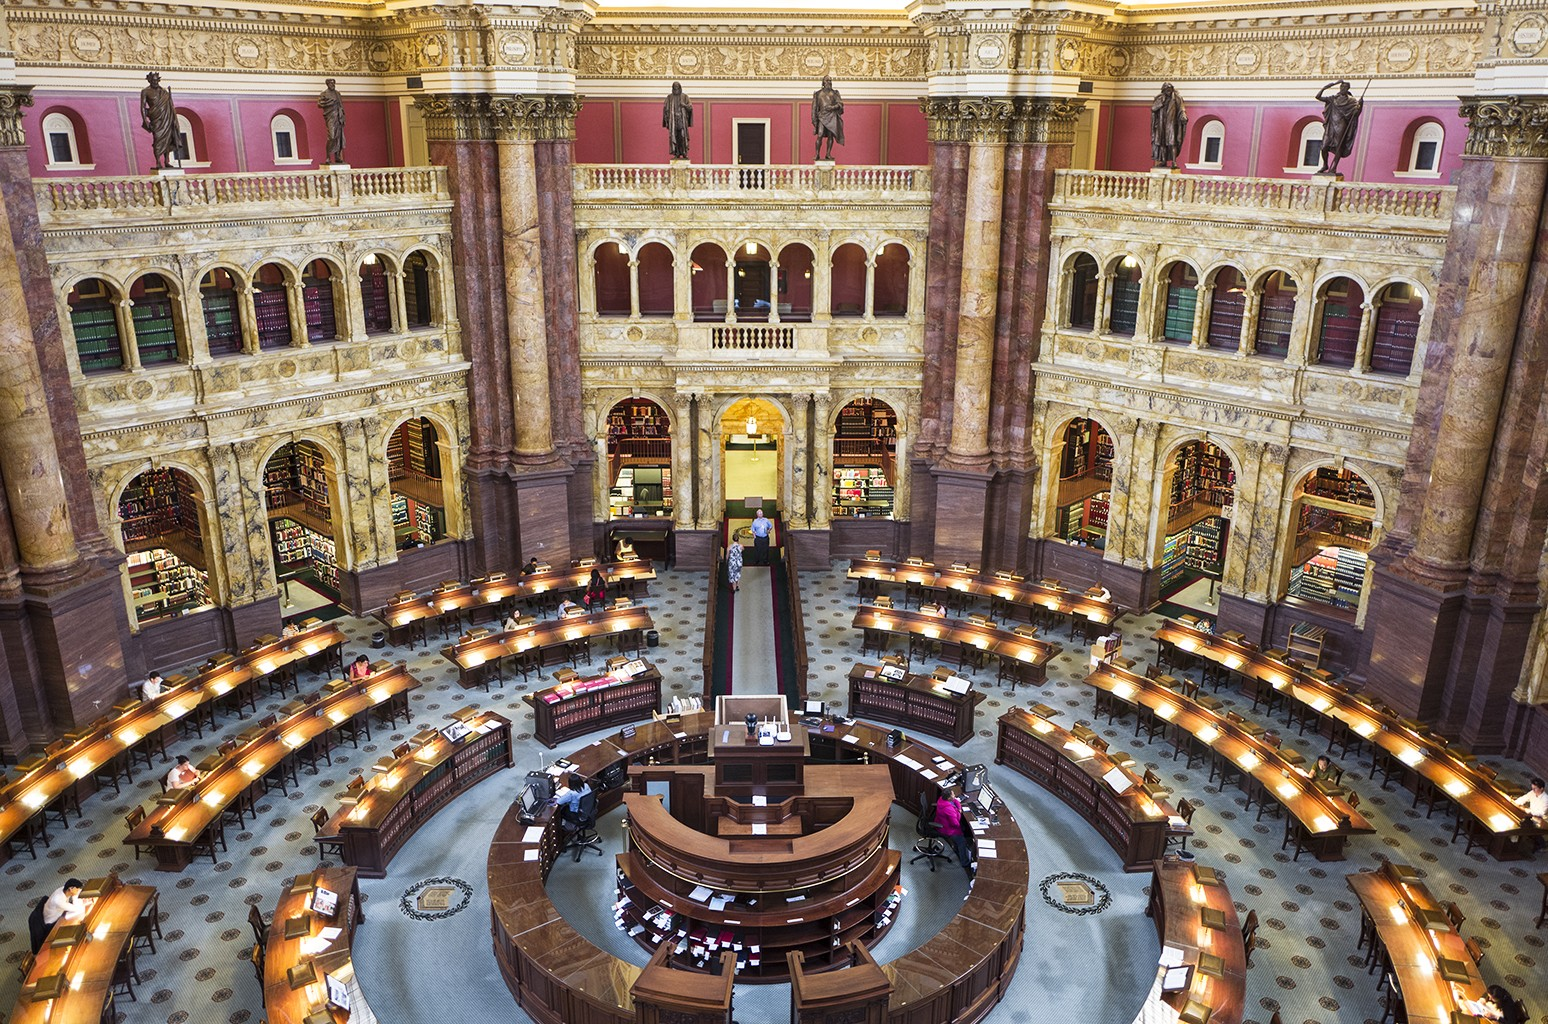 An interior view of the Main Reading Room from an overlook at the Library of Congress Thomas Jefferson Building in Washington, DC.